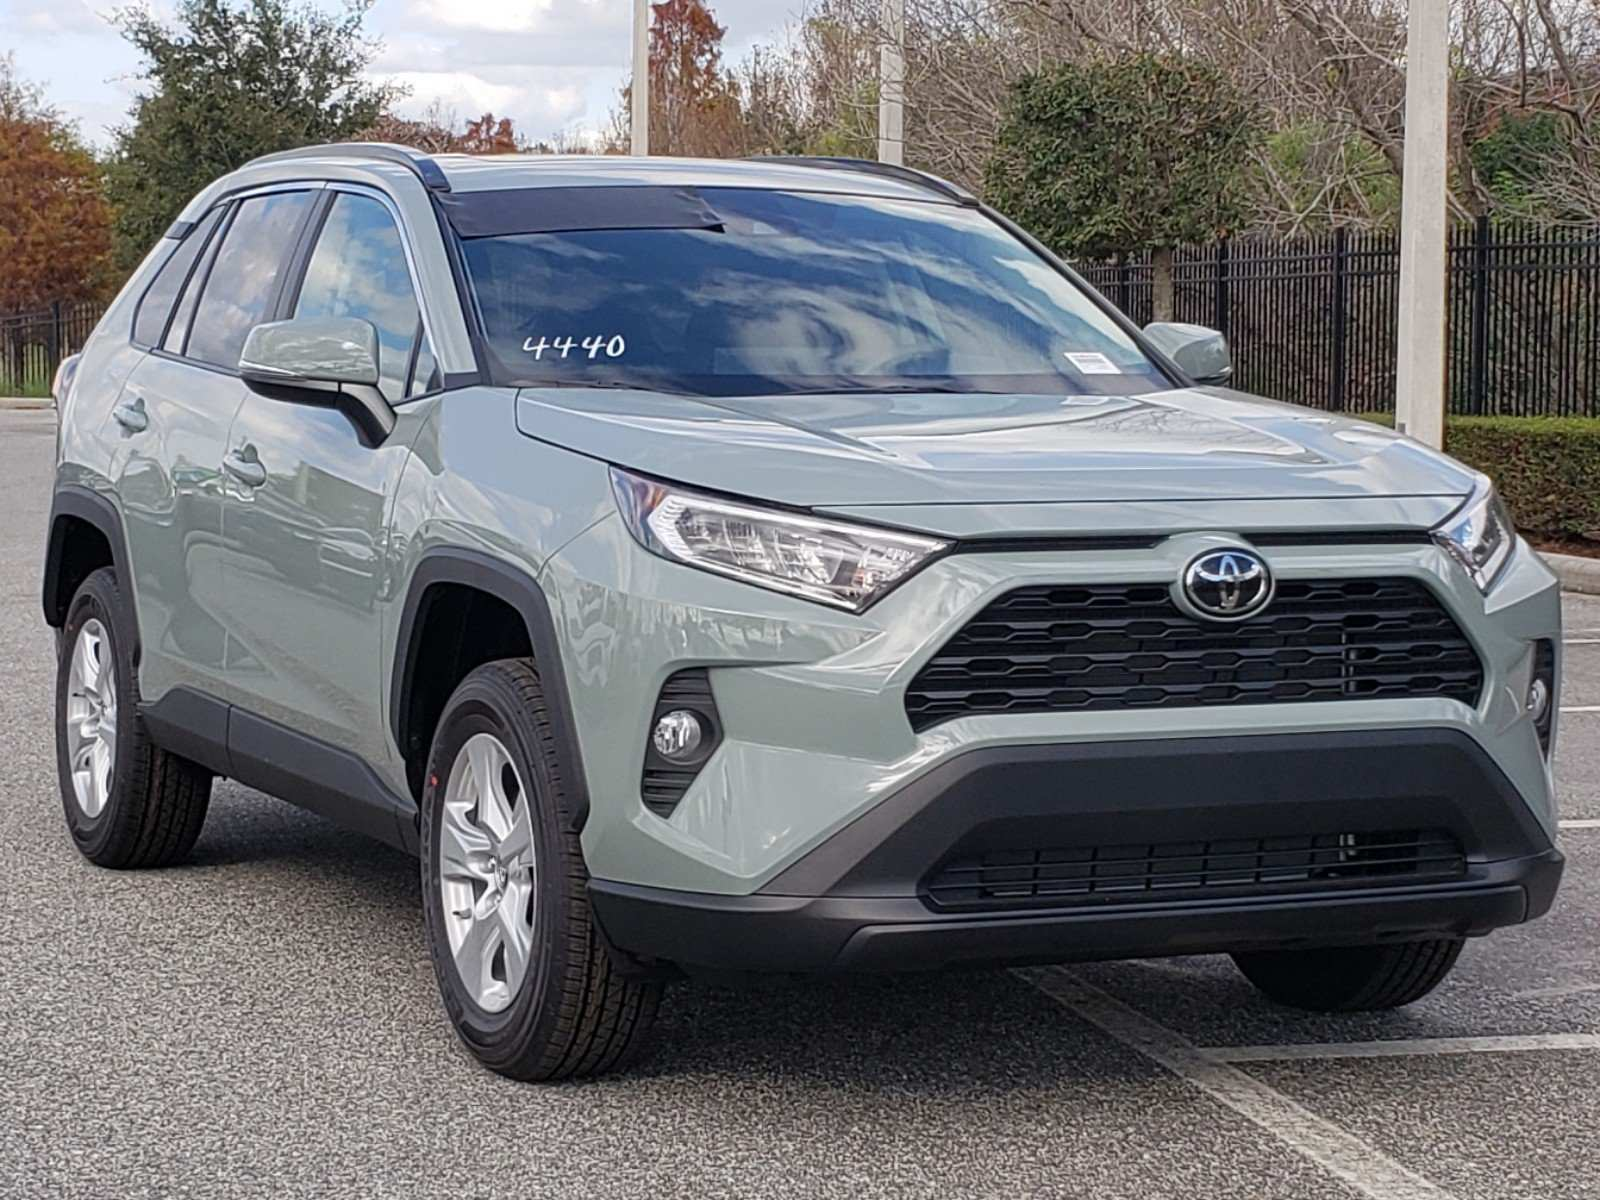 86 Great Toyota Xle 2019 Exterior and Interior by Toyota Xle 2019